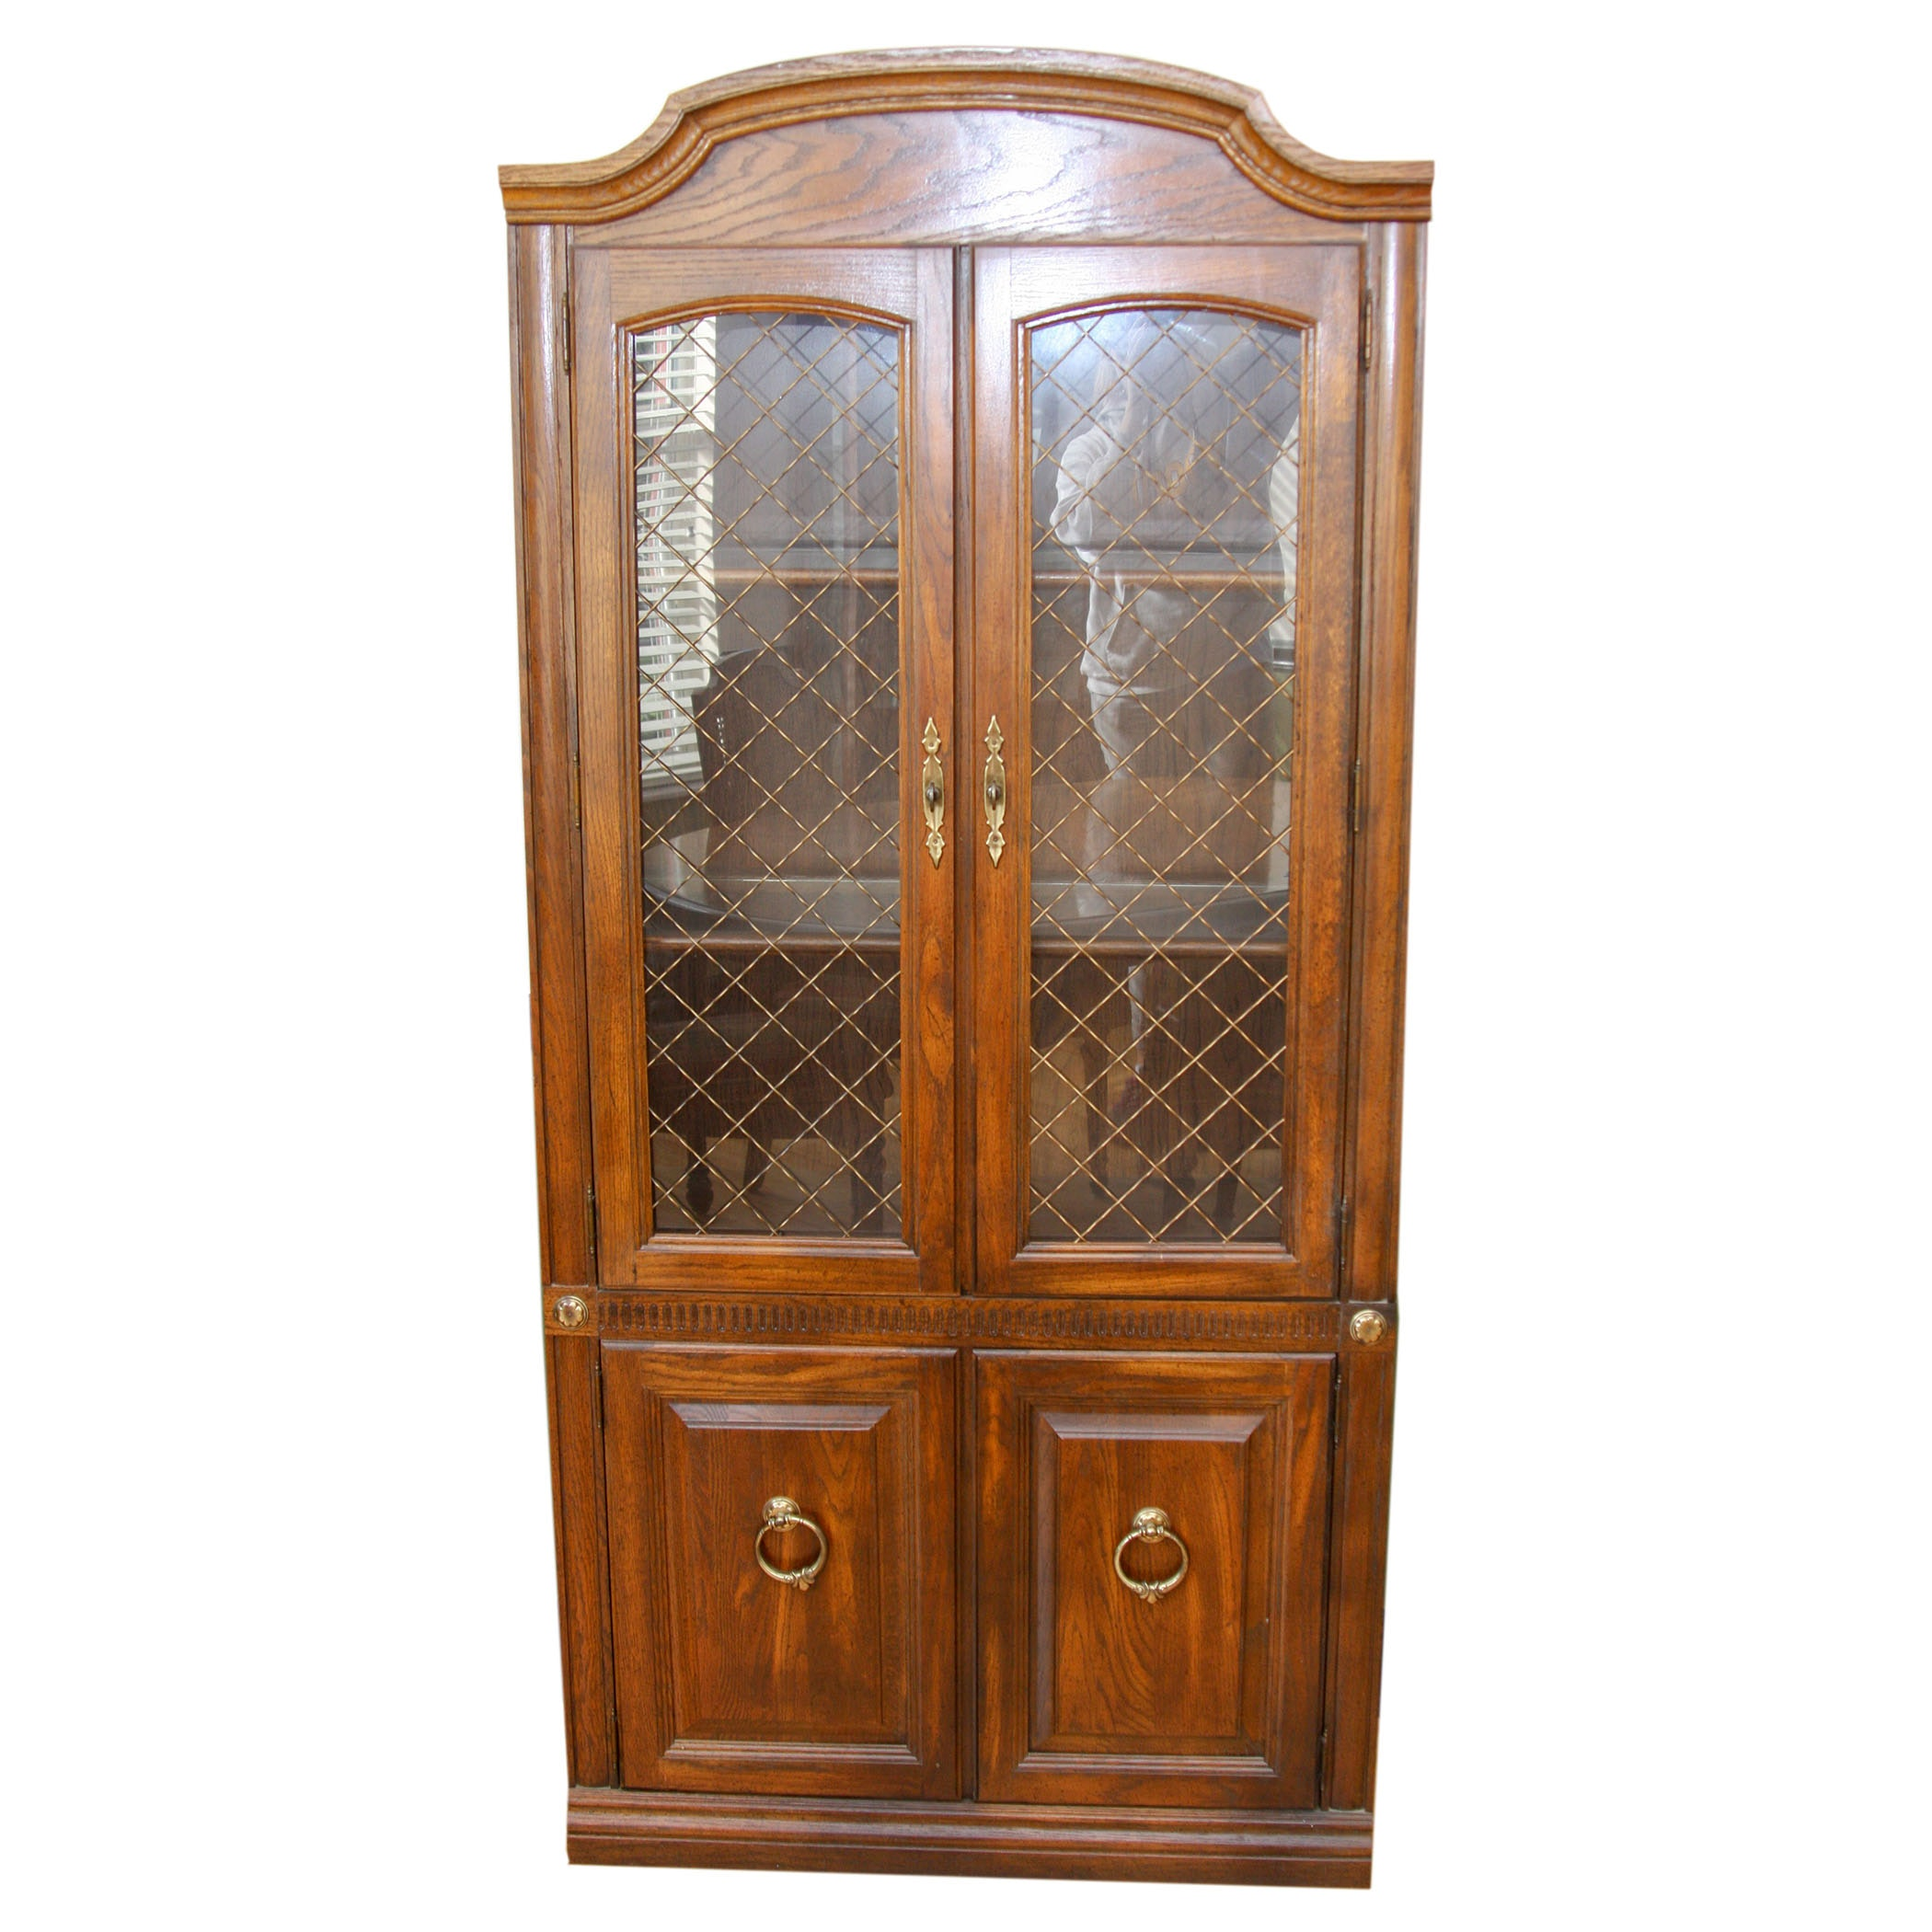 Vintage Aged Oak Finish China Cabinet With Wire Mesh Door Inserts